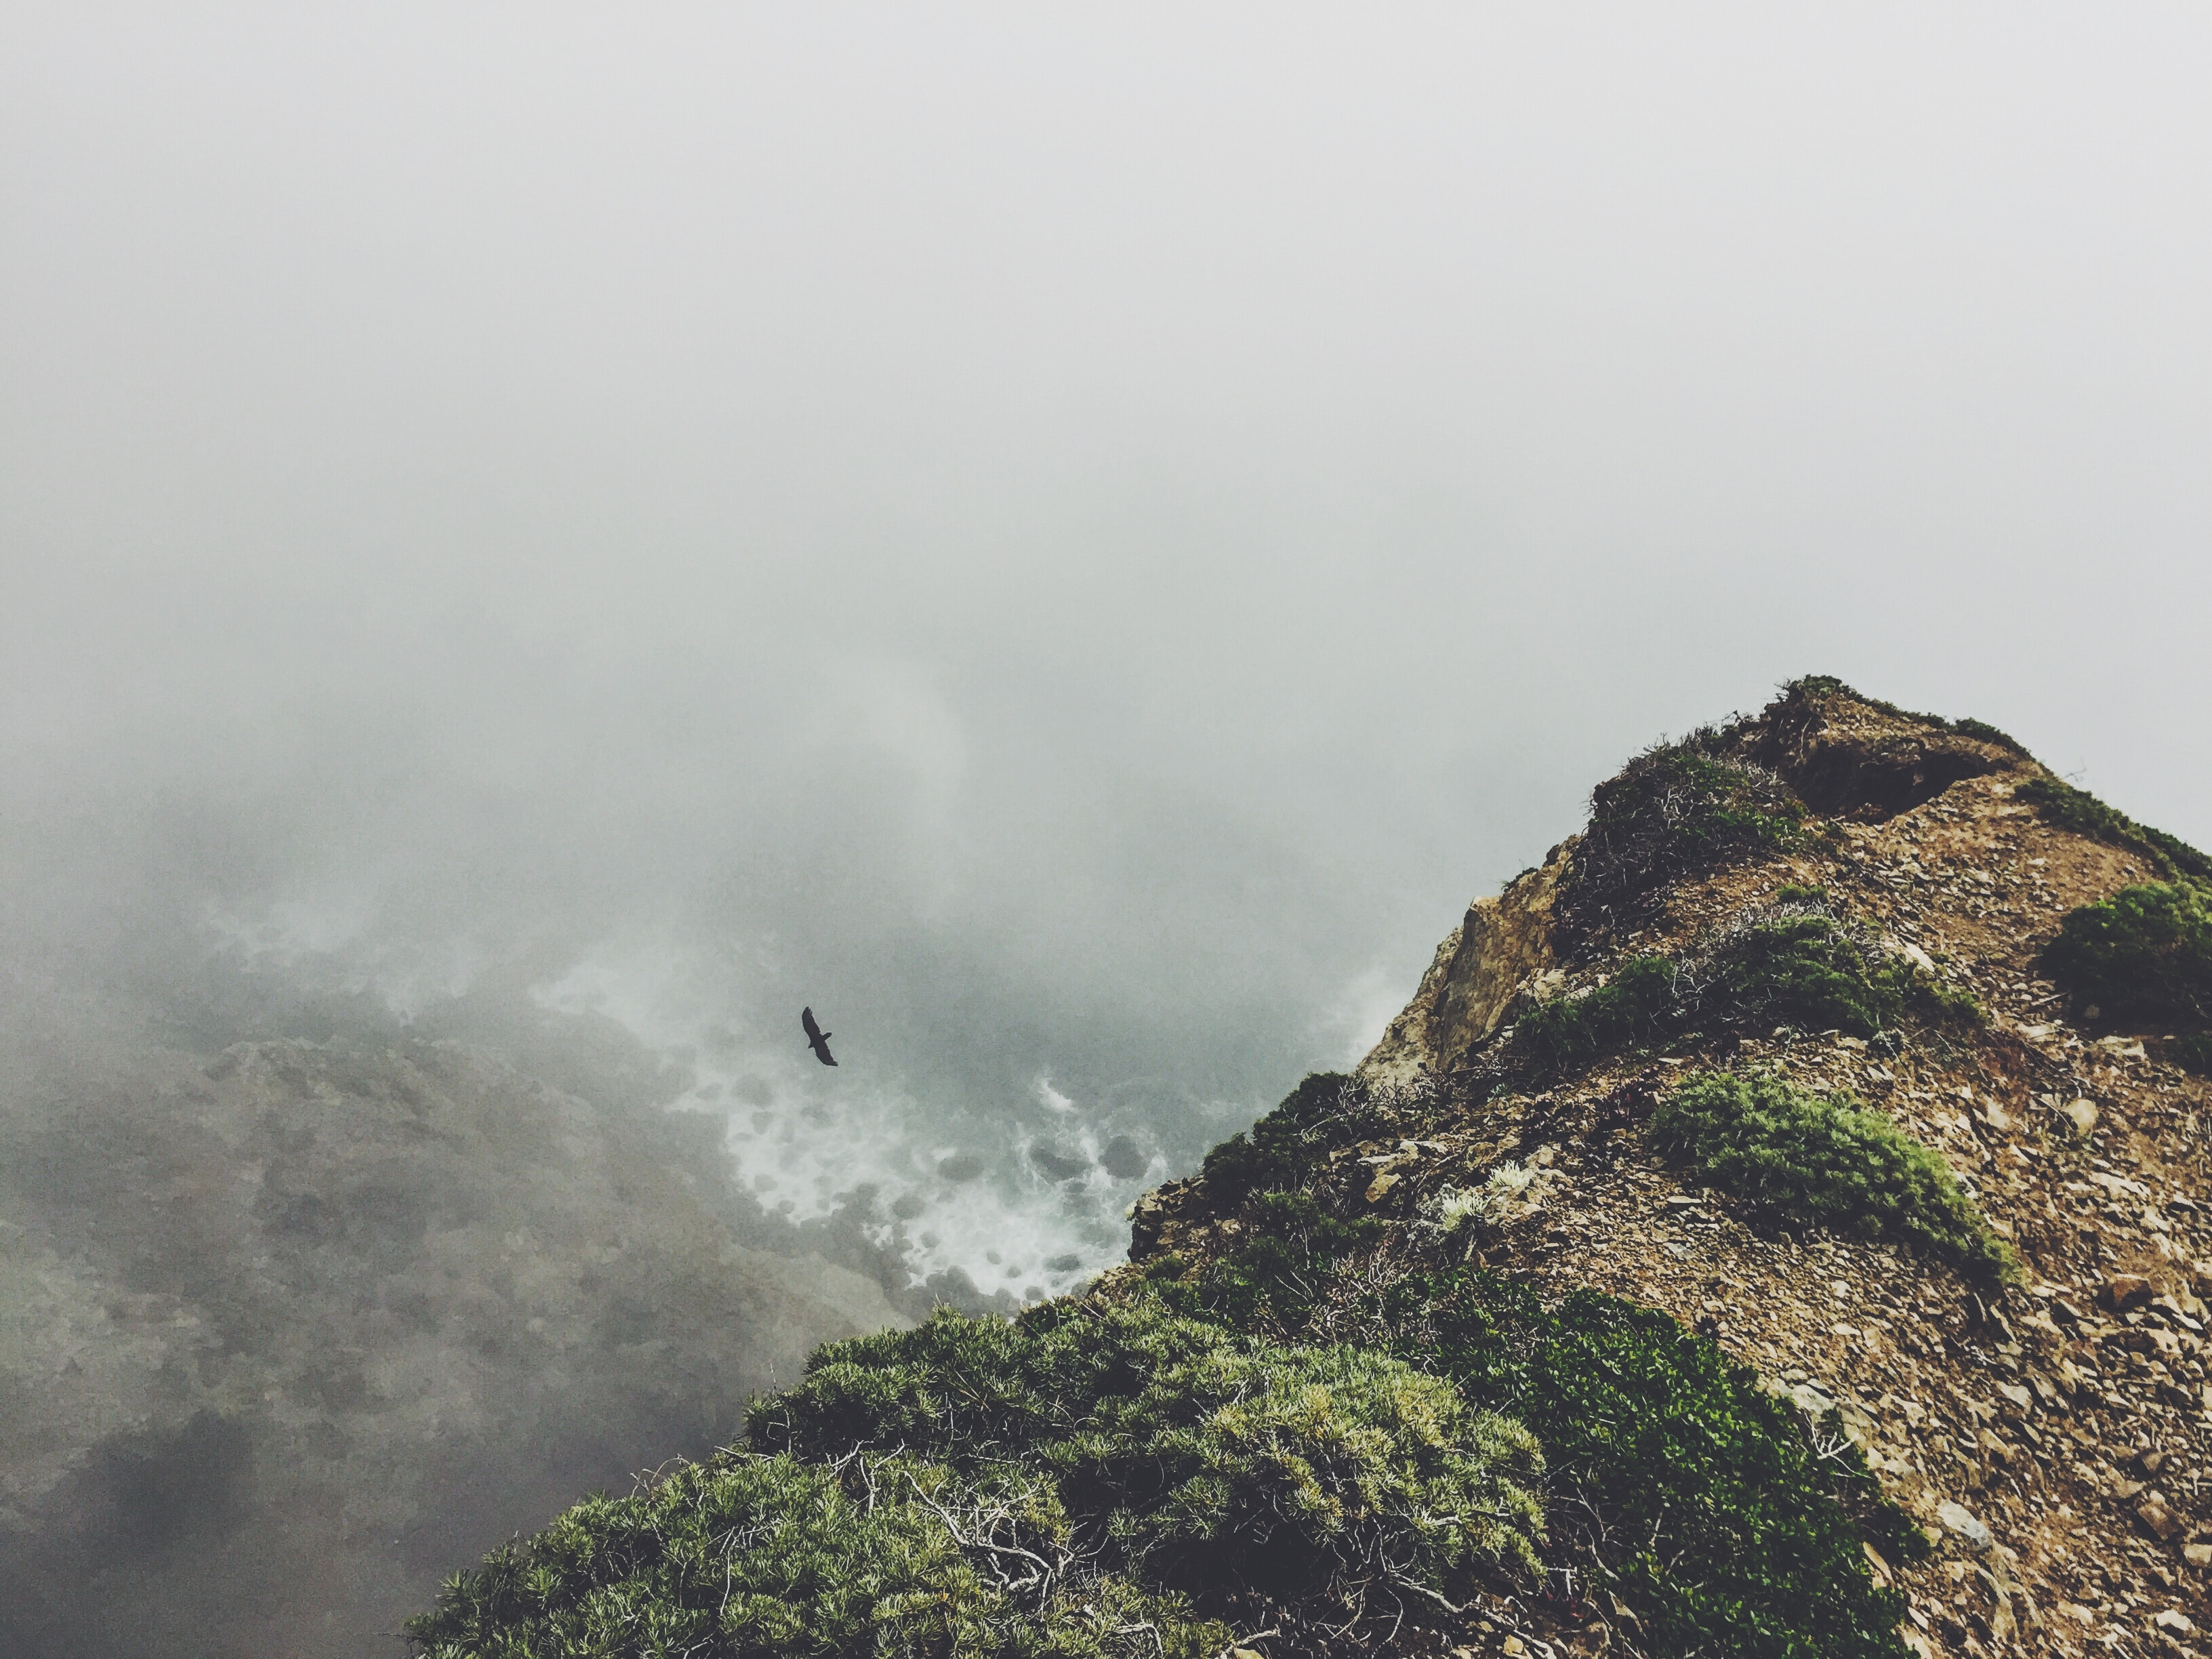 Bird soars over coastal bluffs on a foggy day